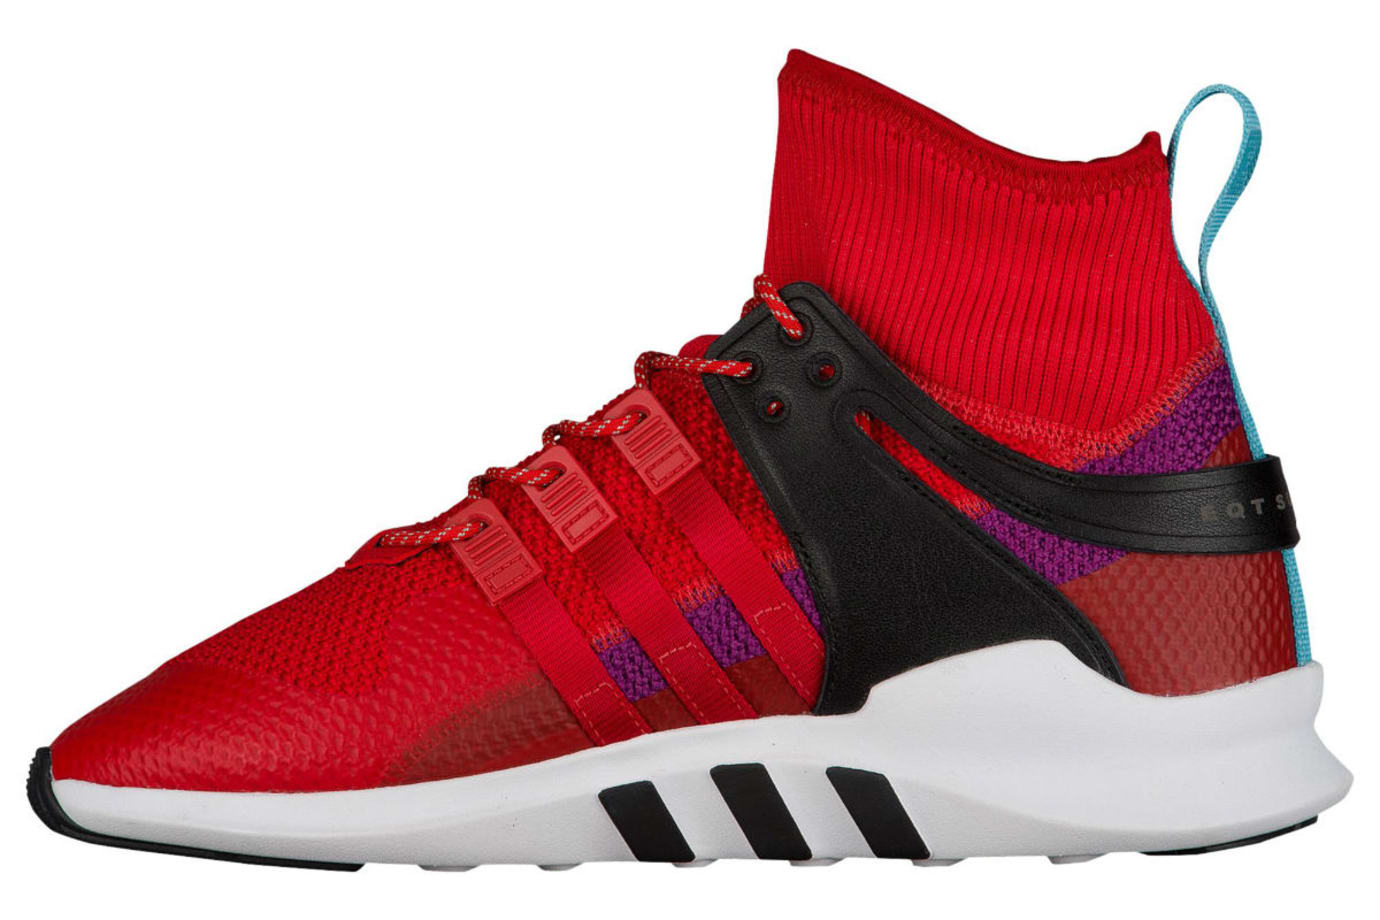 Adidas EQT Support ADV Winter Scarlet Shock Purple Release Date Medial